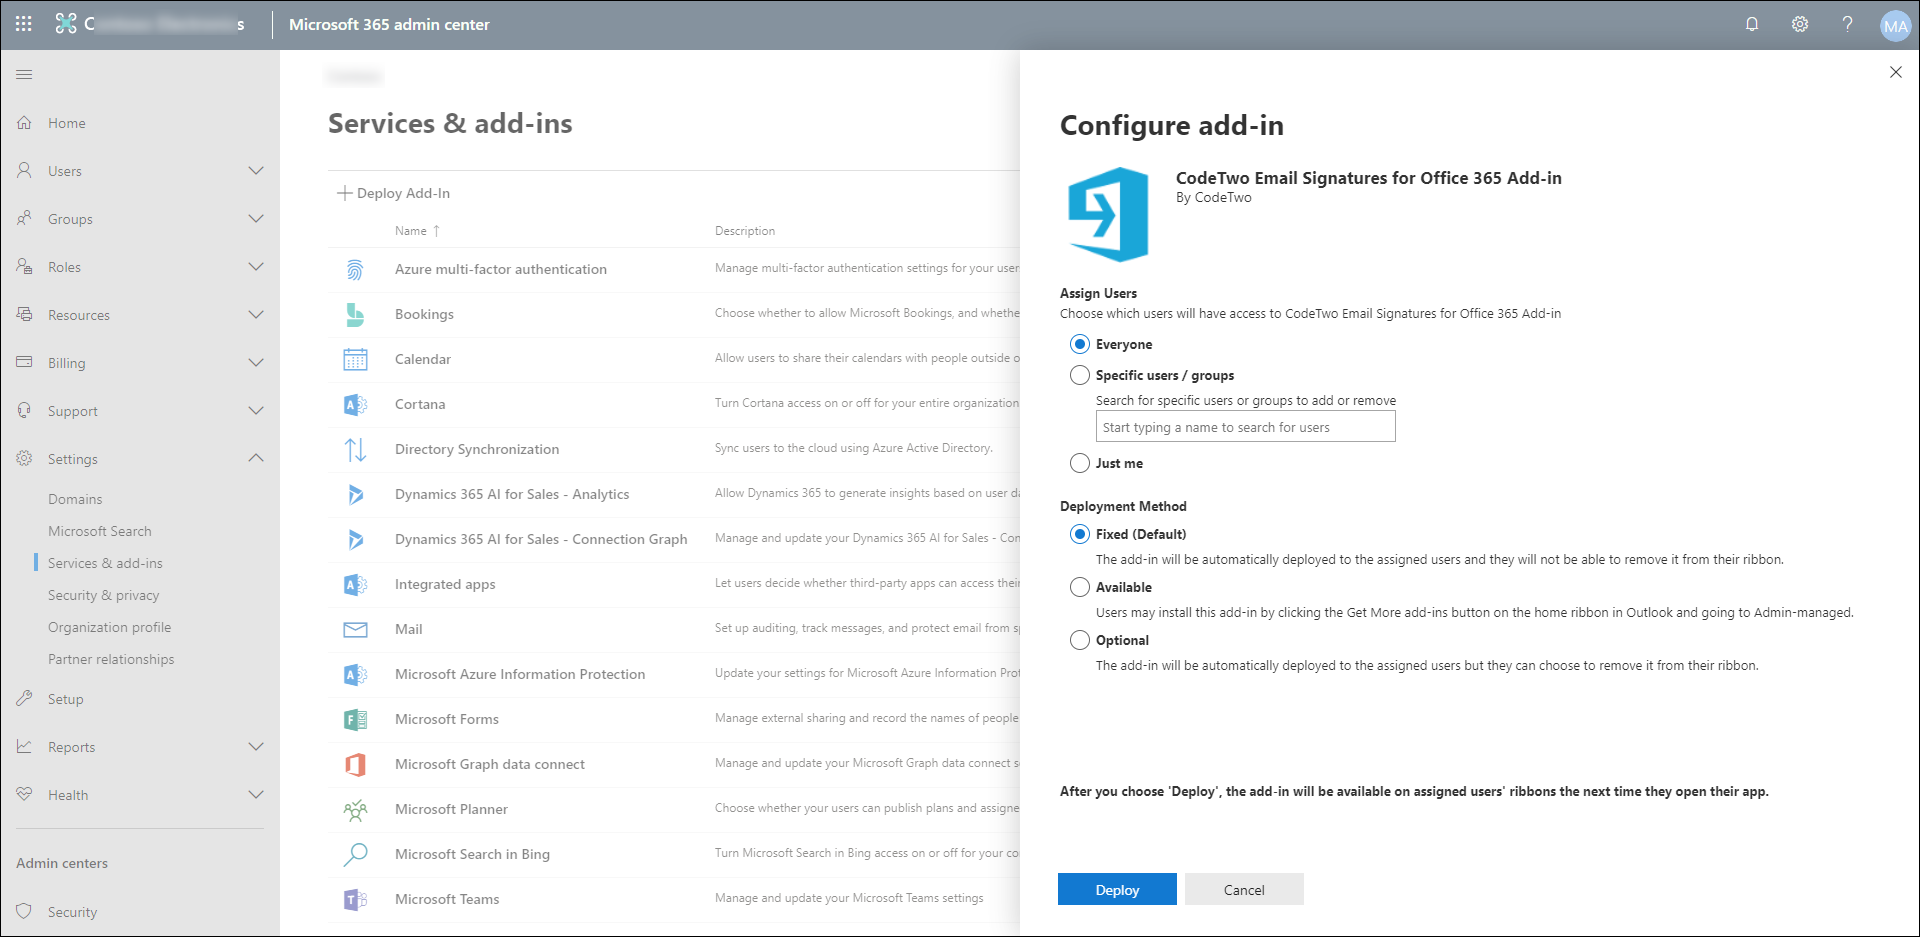 Installation and configuration - Installing the signature preview